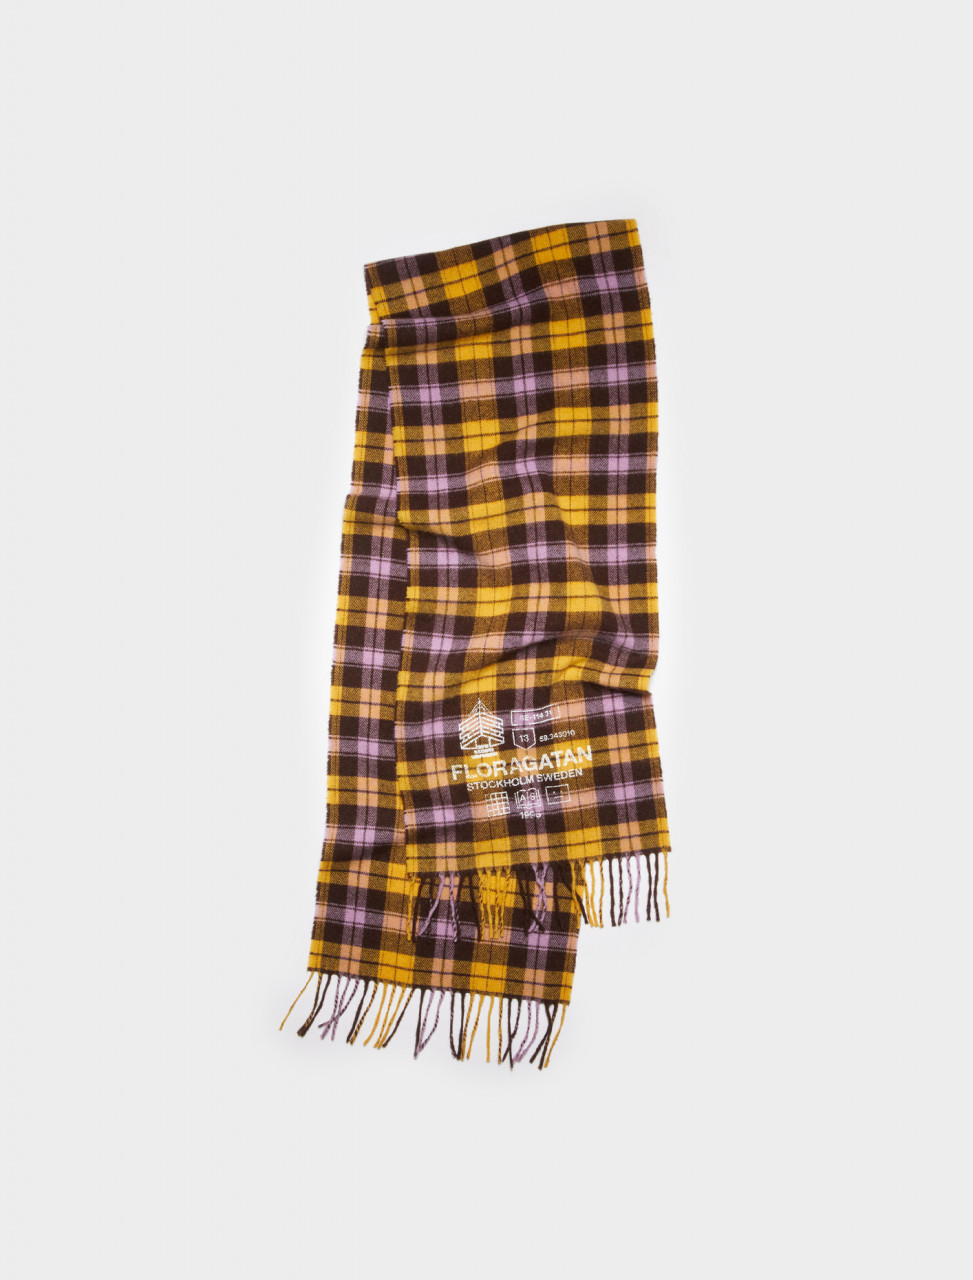 CA0115-CL2 ACNE STUDIOS PLAID PRINT SCARF YELLOW BROWN